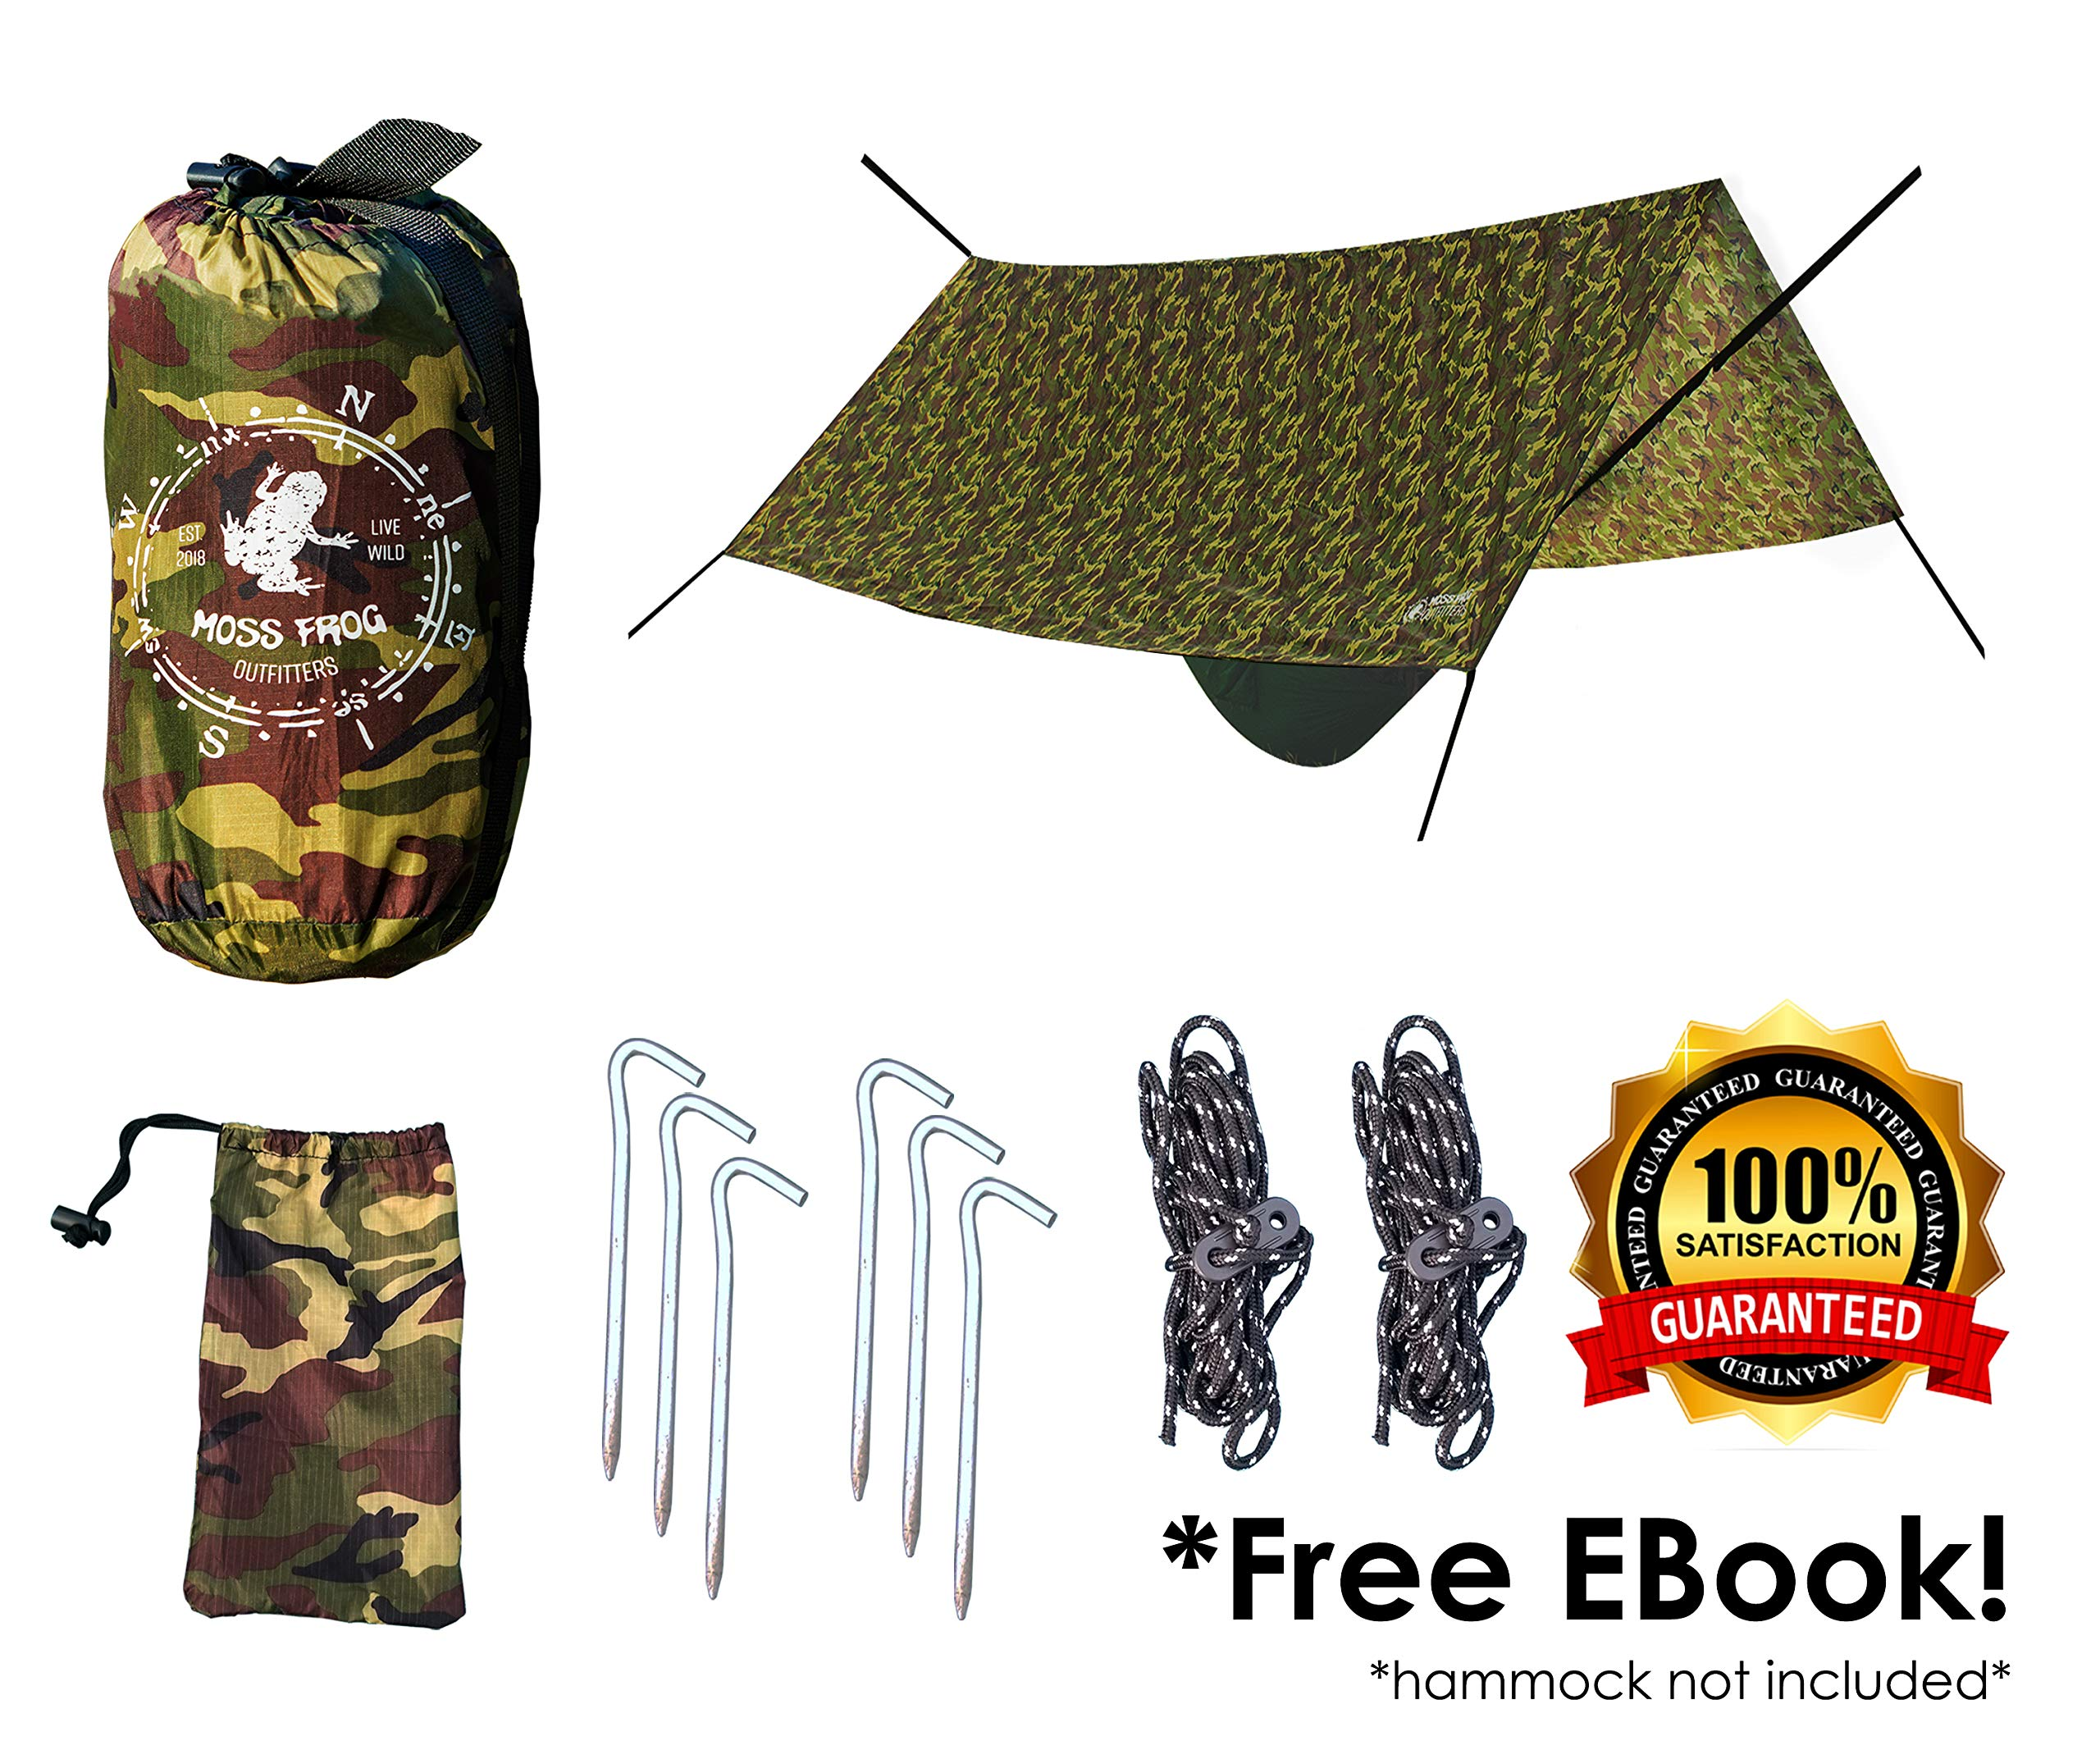 Moss Frog Outfitters Hammock Rain Fly/Camping Tarp Tent Shelter, Portable, Lightweight 10' x 10' - Green Camo by Moss Frog Outfitters